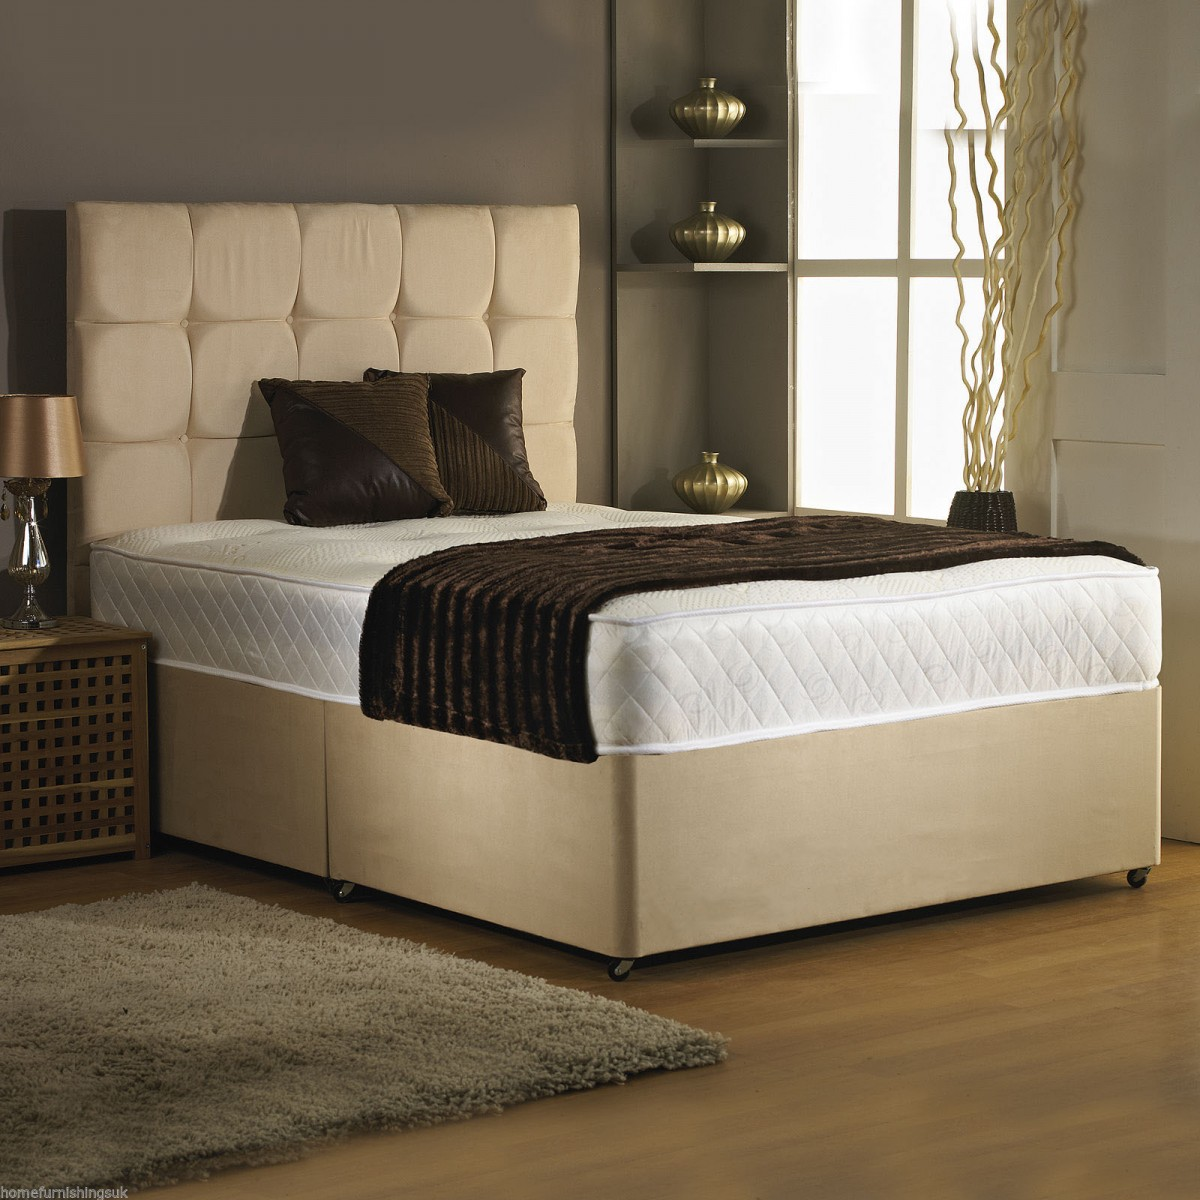 4ft small double divan bed base only in stone colour suede for Small double divan with mattress